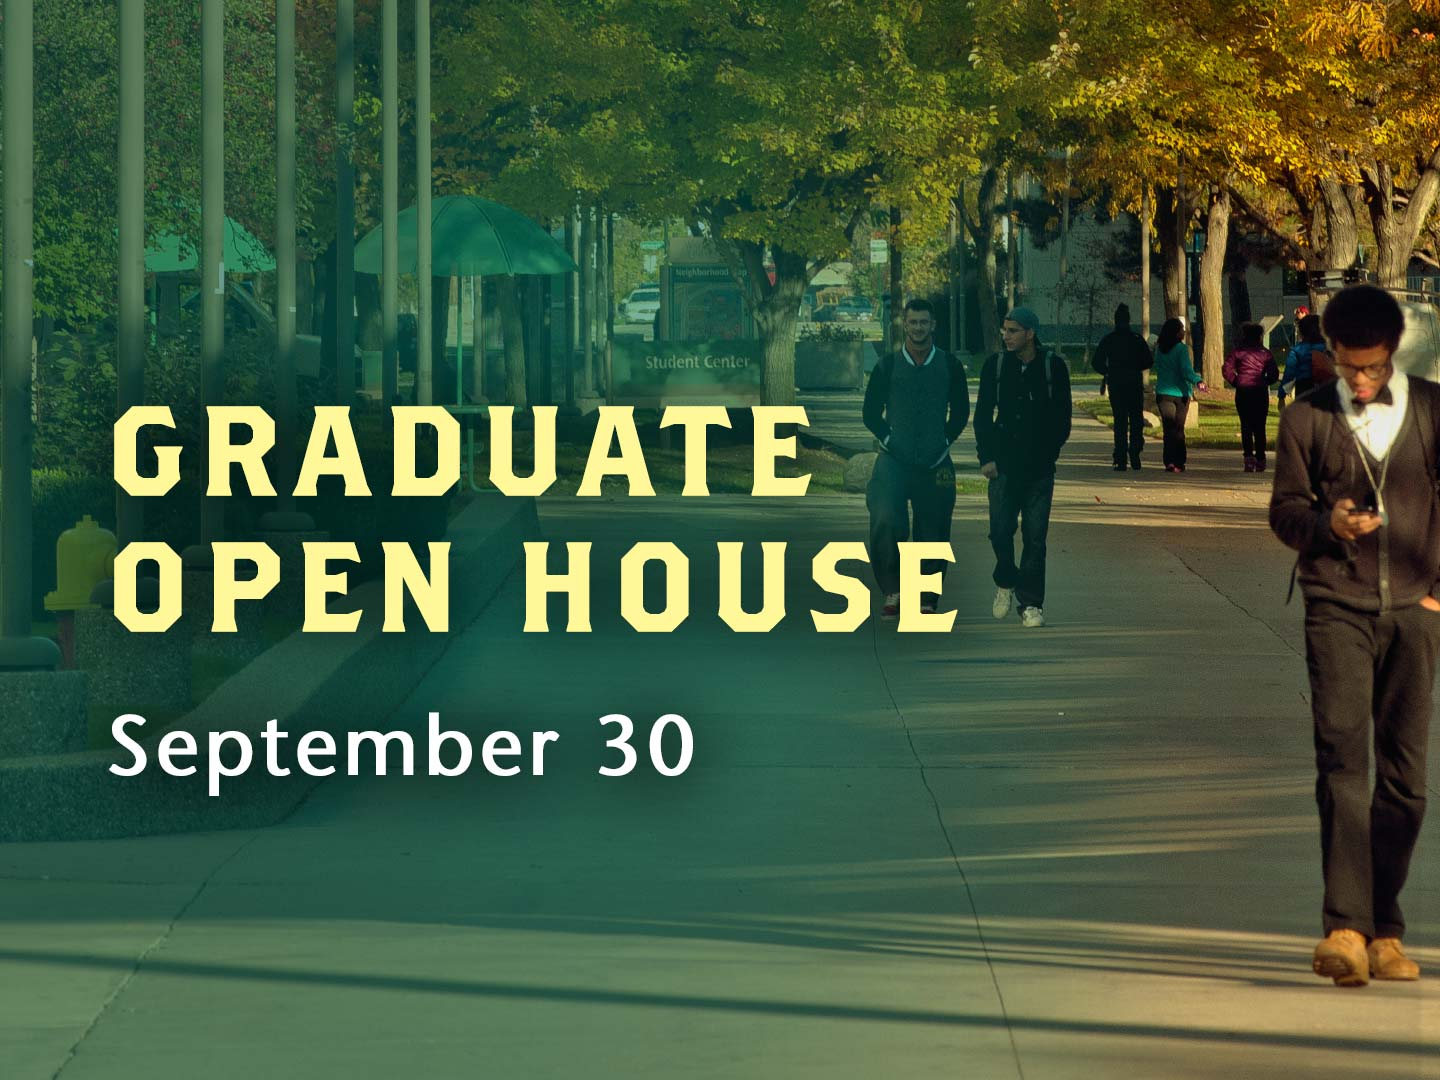 Meet with program representatives, get financial aid information, take a campus tour and more.